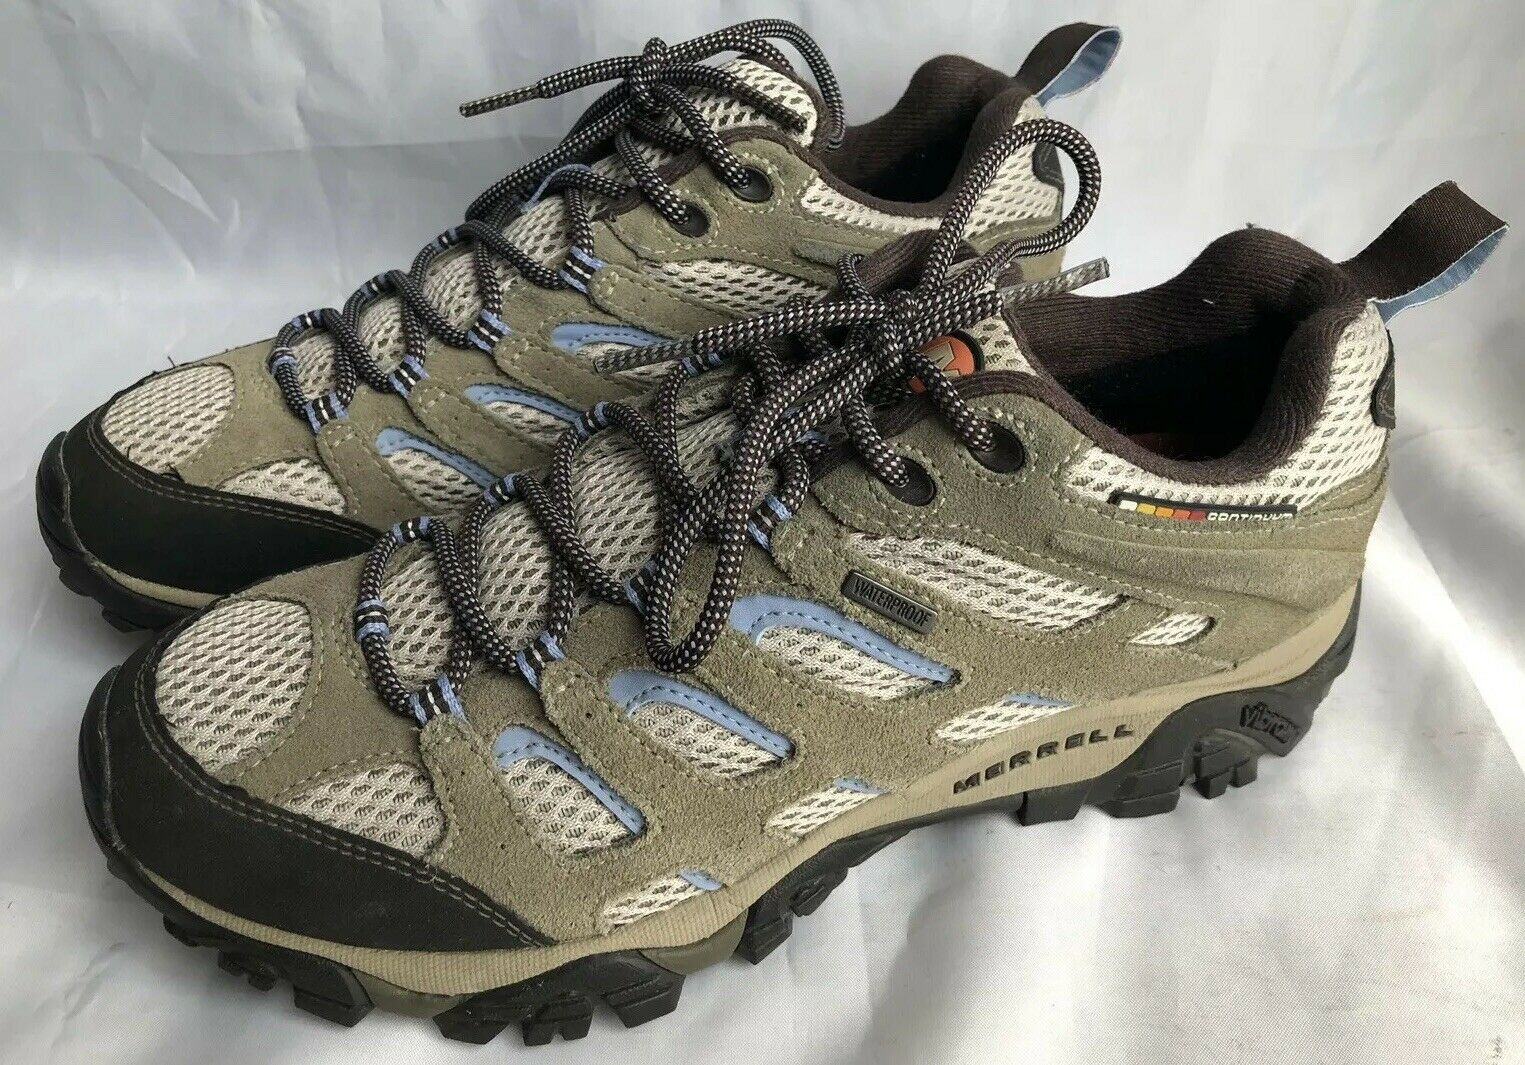 Merrell Womens Ortholite Air Cushion Vibram Hiking Walking shoes